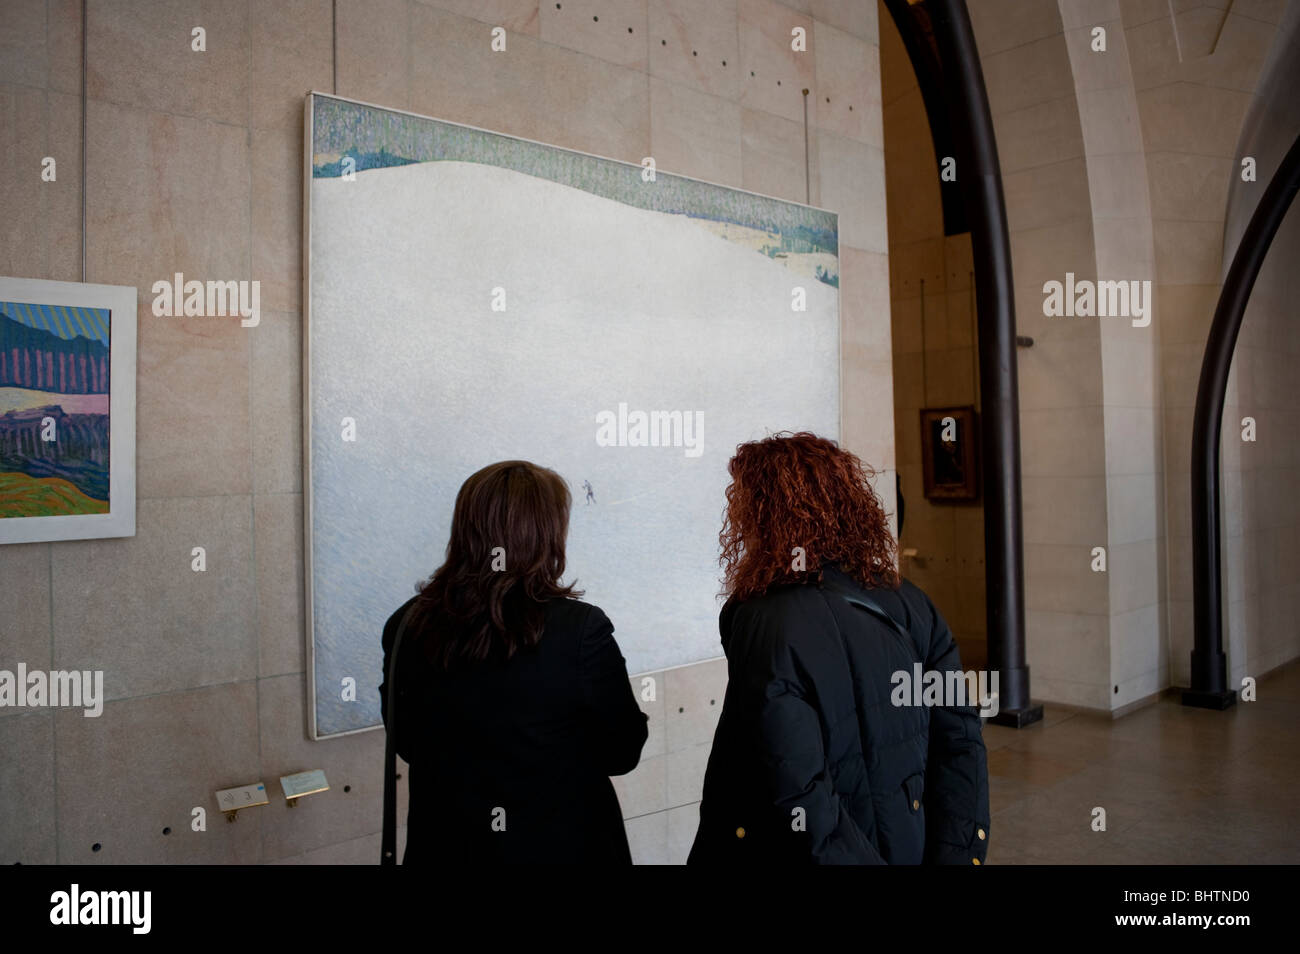 Paris, France - Symbolist Post Impressionist Painting on Display Inside of Orsay Museum, - Stock Image